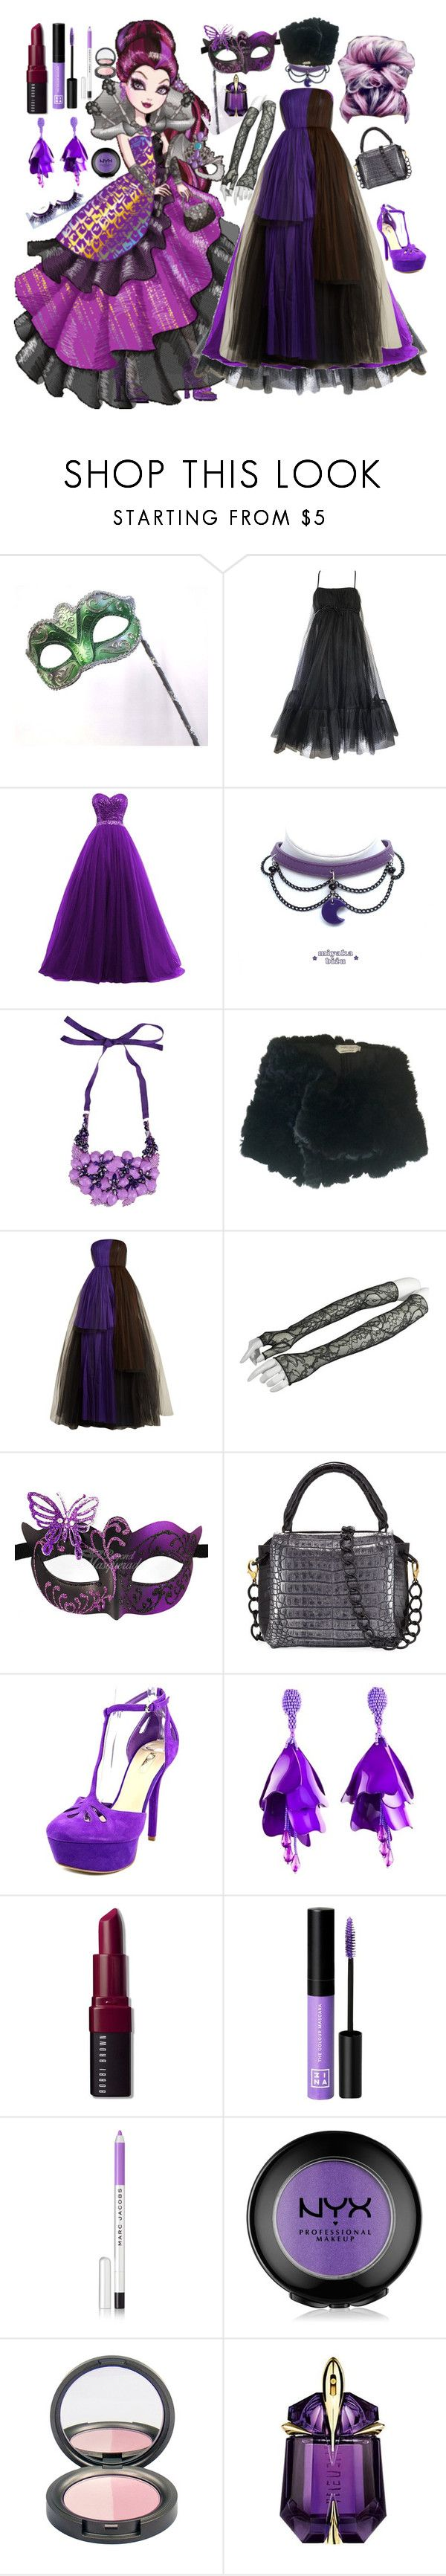 """Raven Queen-Thronecoming"" by fandom-girl365790 ❤ liked on Polyvore featuring Masquerade, Suzy Perette, Alberta Ferretti, Marina Rinaldi, Delpozo, GUESS, Oscar de la Renta, Bobbi Brown Cosmetics, 3ina and Marc Jacobs"